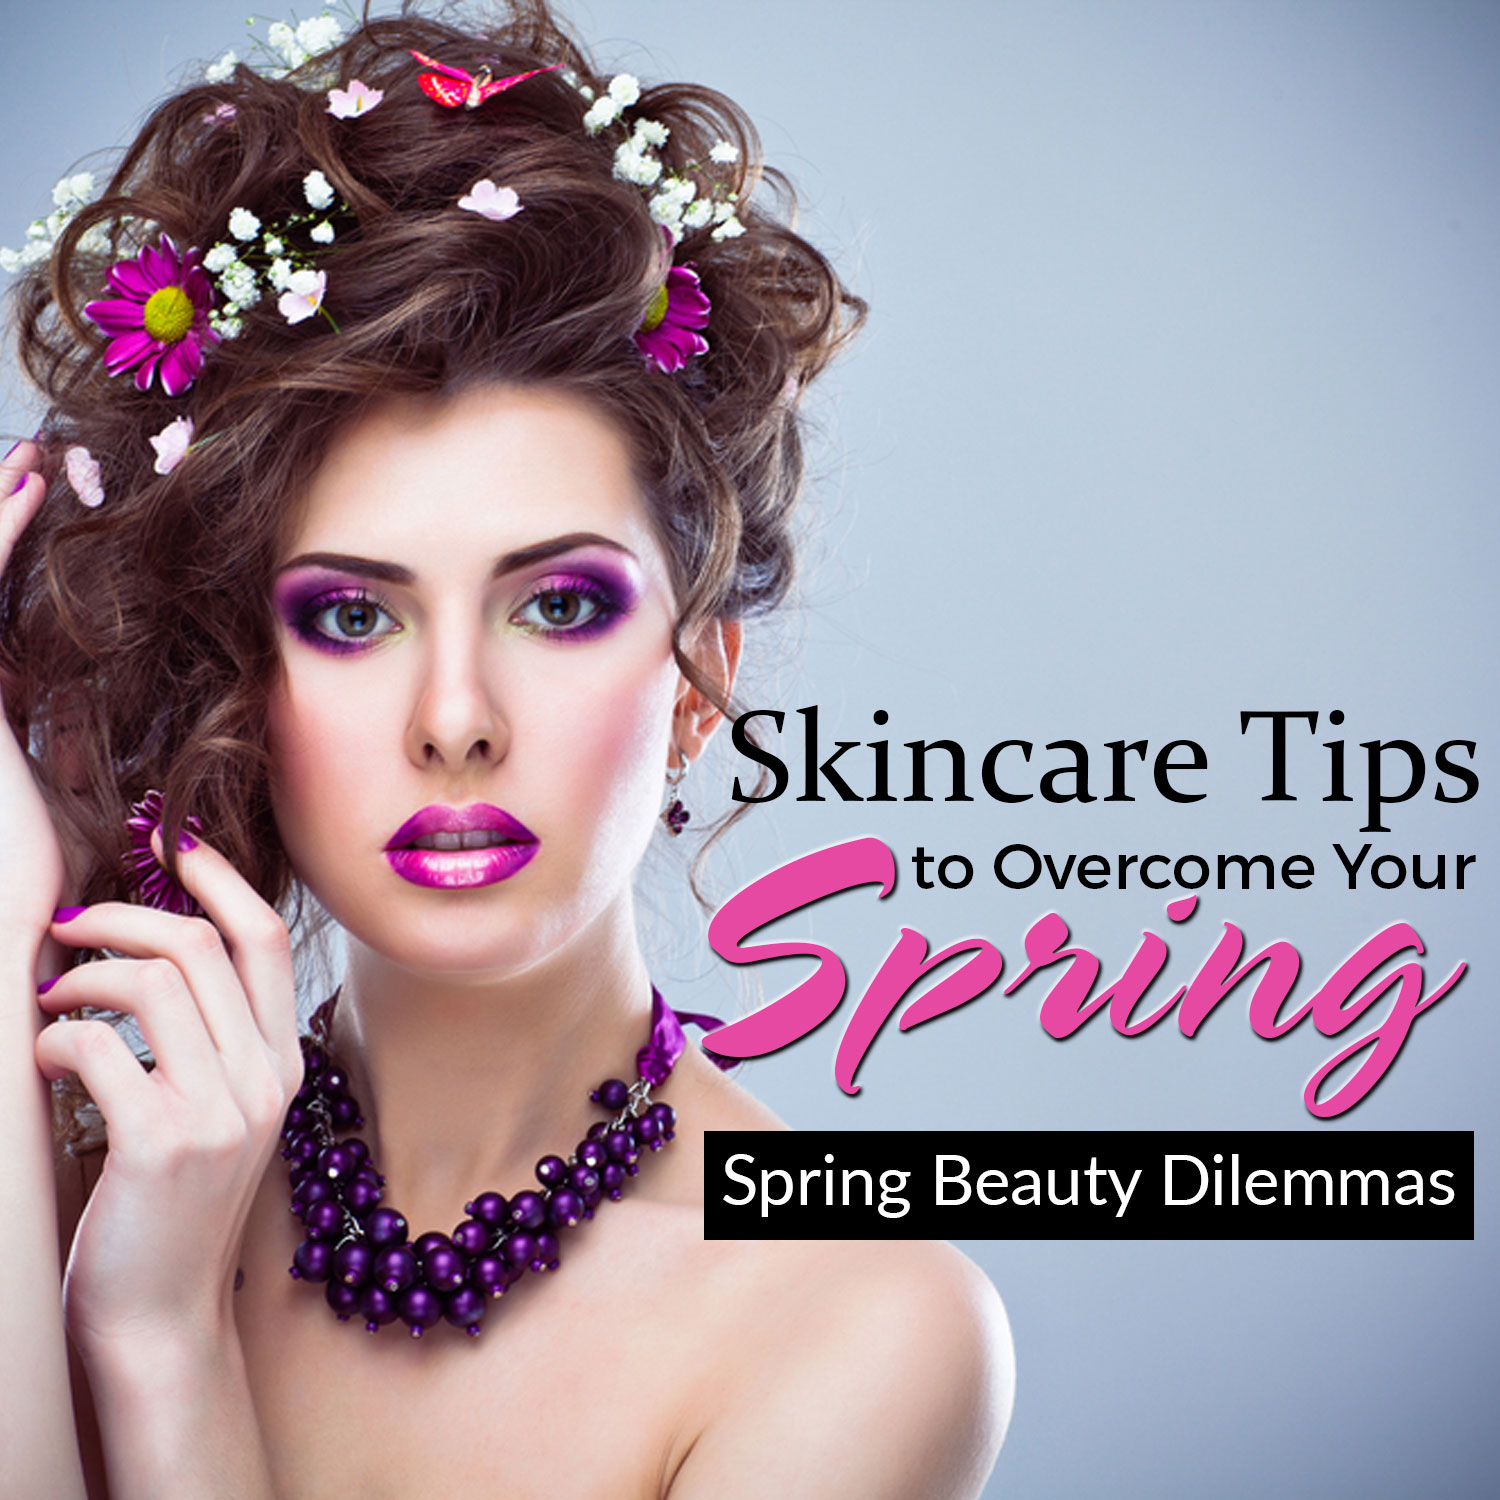 Spring Skin Care: Dealing with Skin Issues and Looking Beautiful